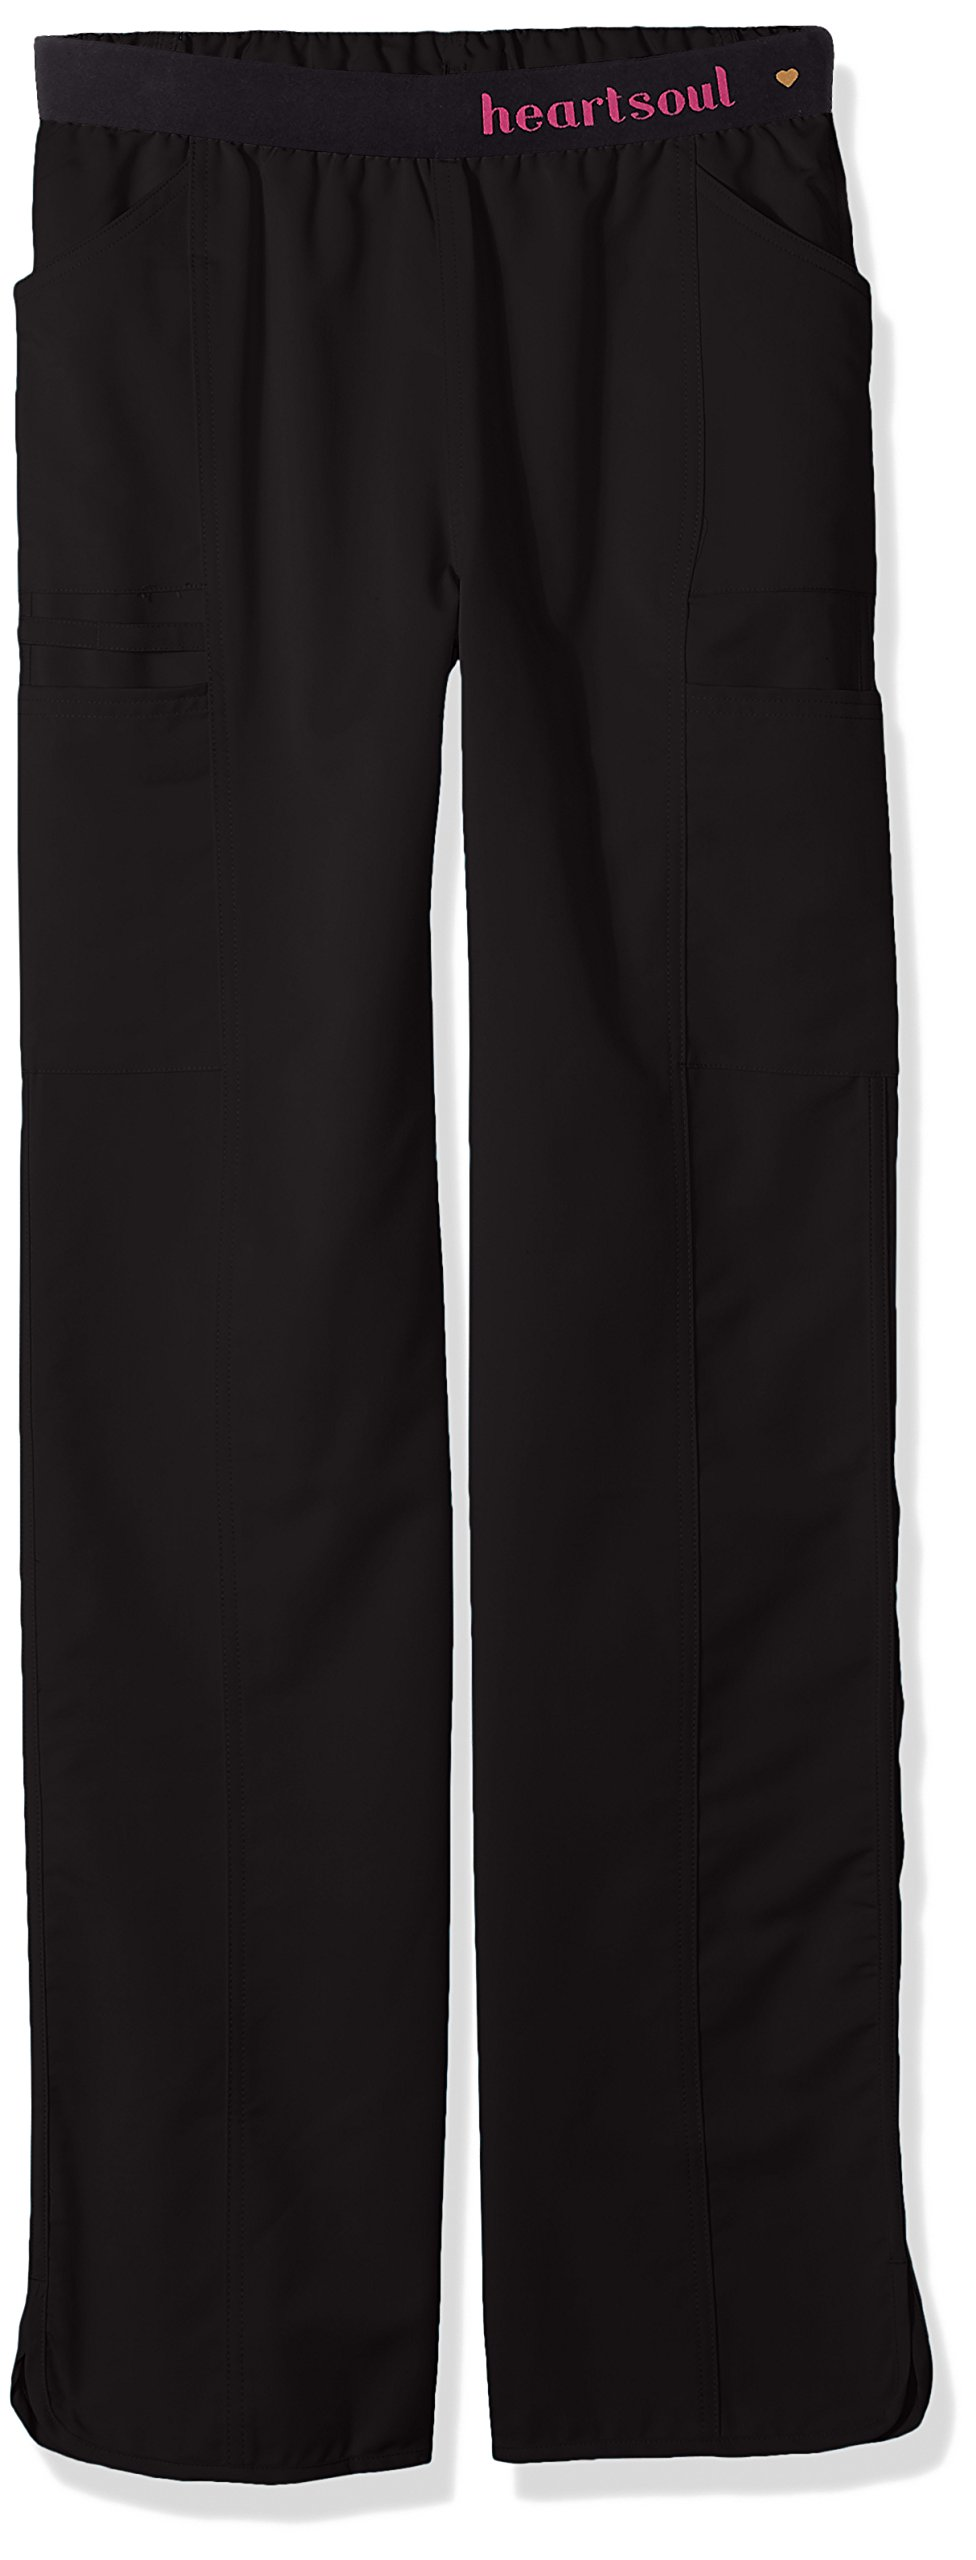 HeartSoul Scrubs Women's Head Over Heelsso in Love Low Rise Pull-on Pant, Black, X-Large Tall by HeartSoul Scrubs (Image #1)